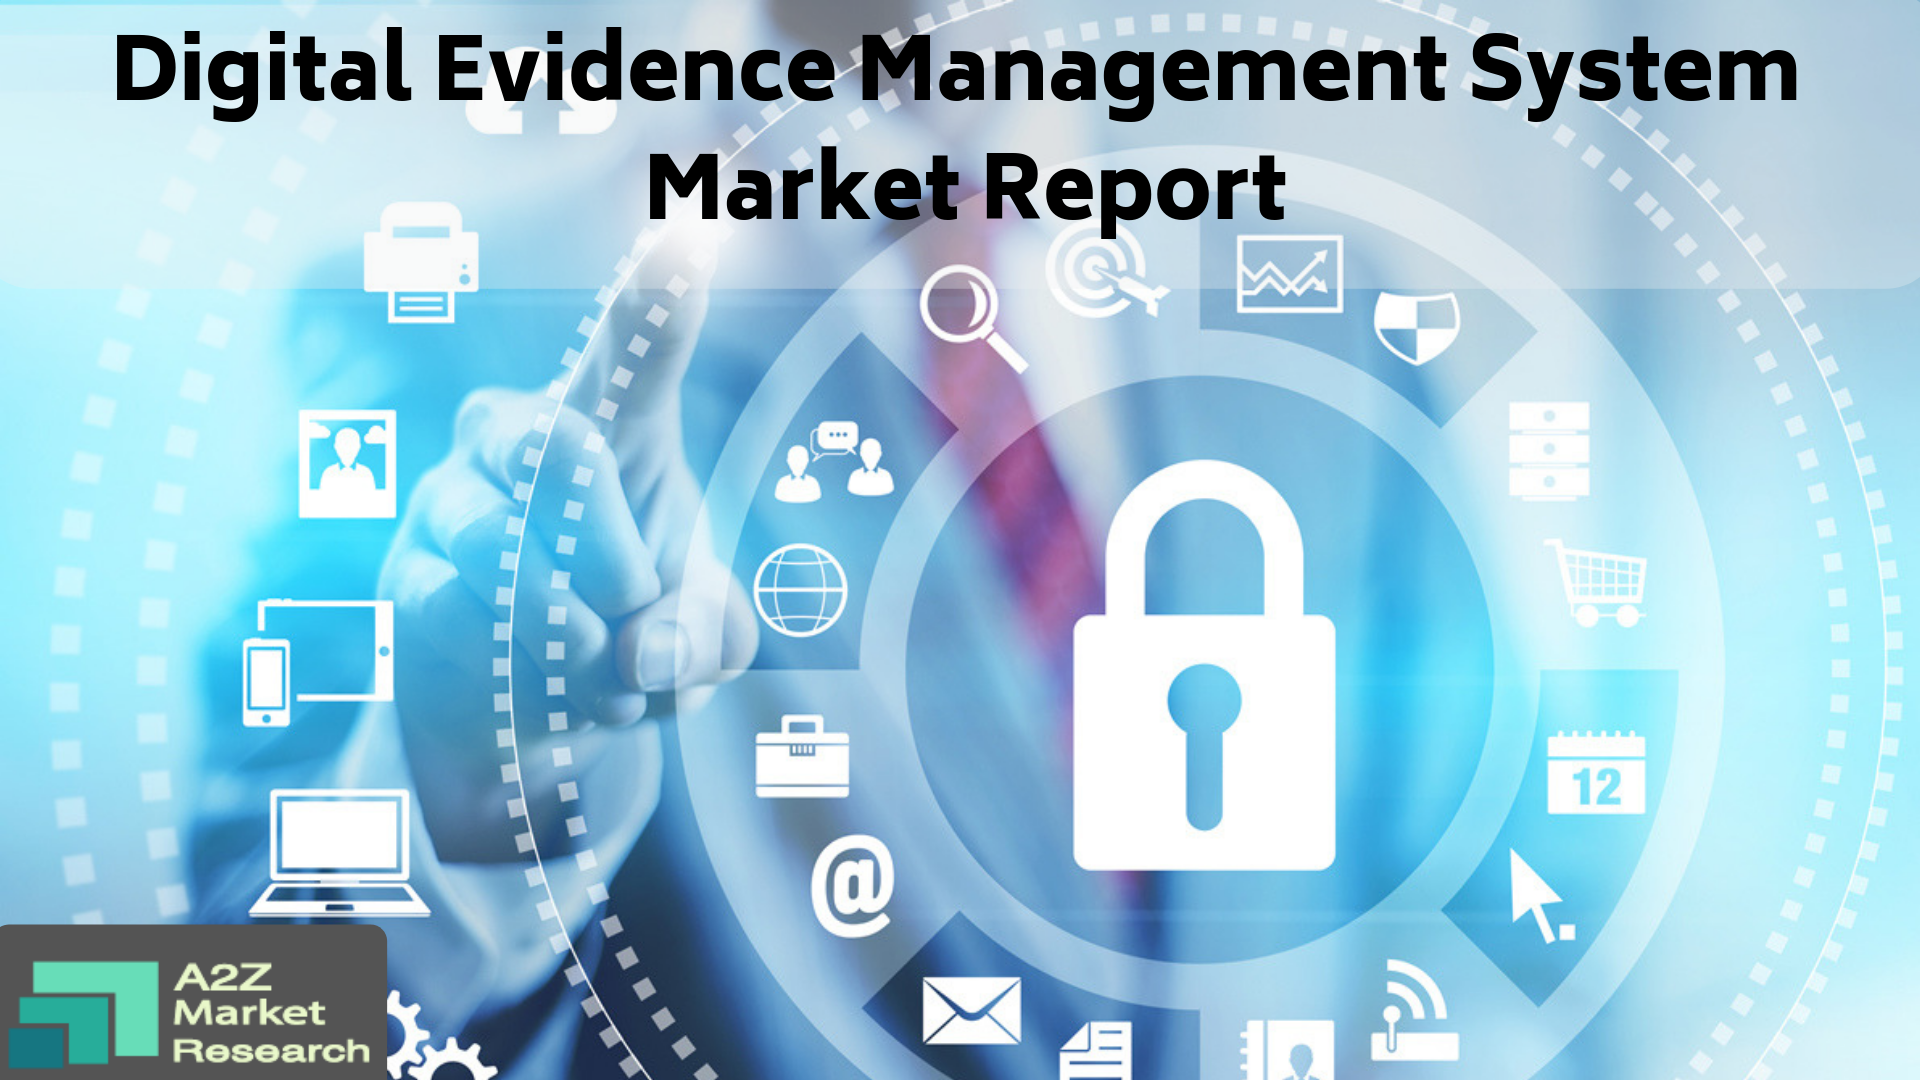 Know in depth about Digital Evidence Management System Market: What Recent Study say about Top Companies like IBM, Oracle, FotoWare, Panasonic, Motorola, Vidizmo, NICE, Intrensic, QueTel, CitizenGlobal, MSAB, Tracker